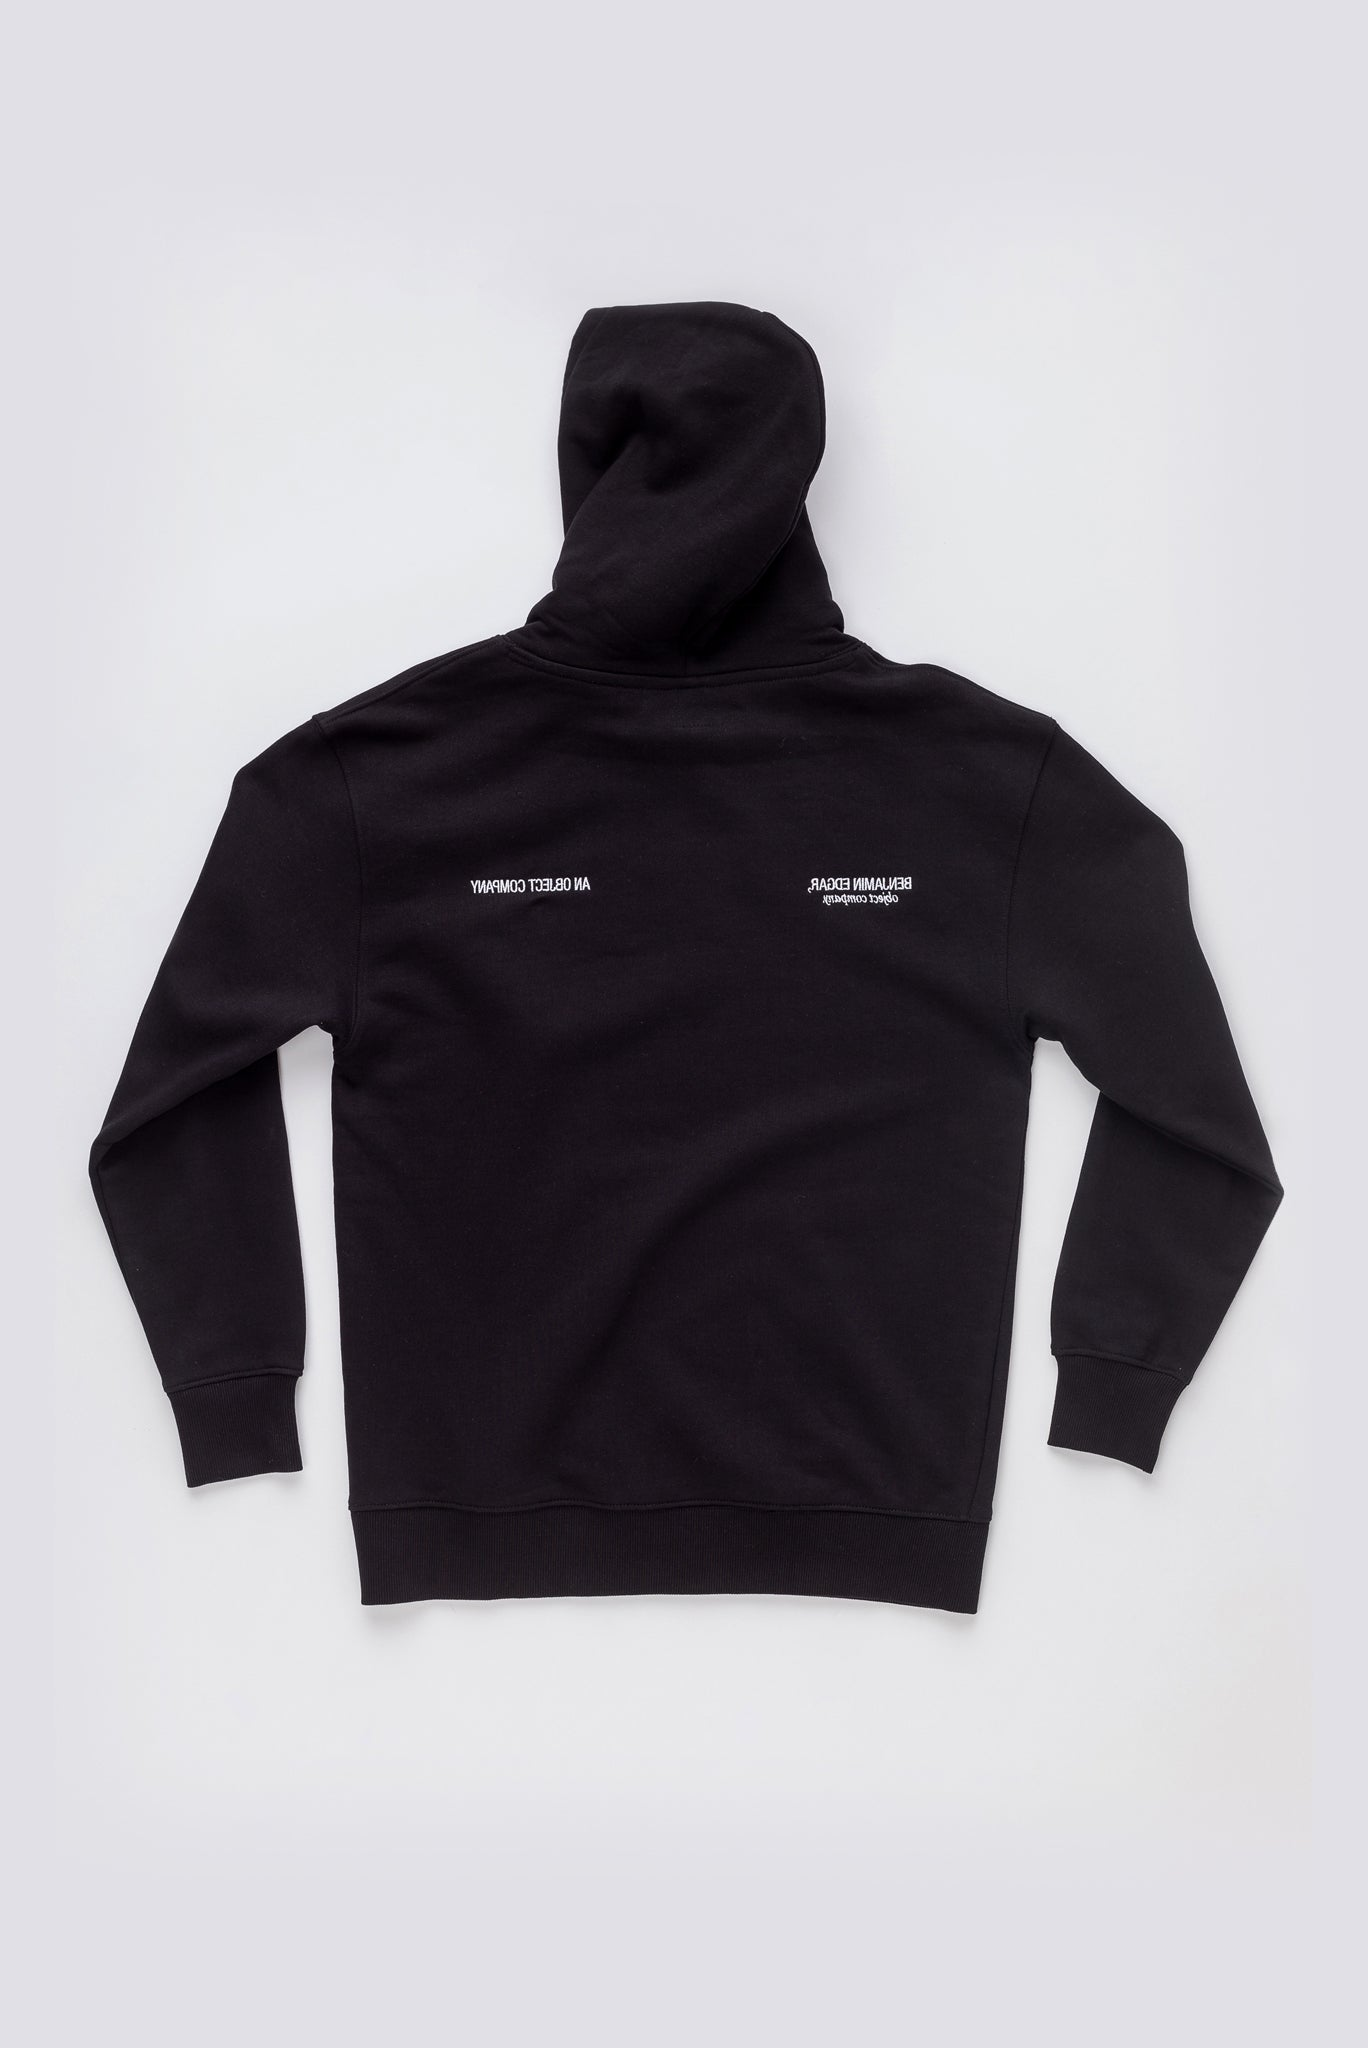 """All The Way Through"" Embroidered Hooded Sweatshirt #1"